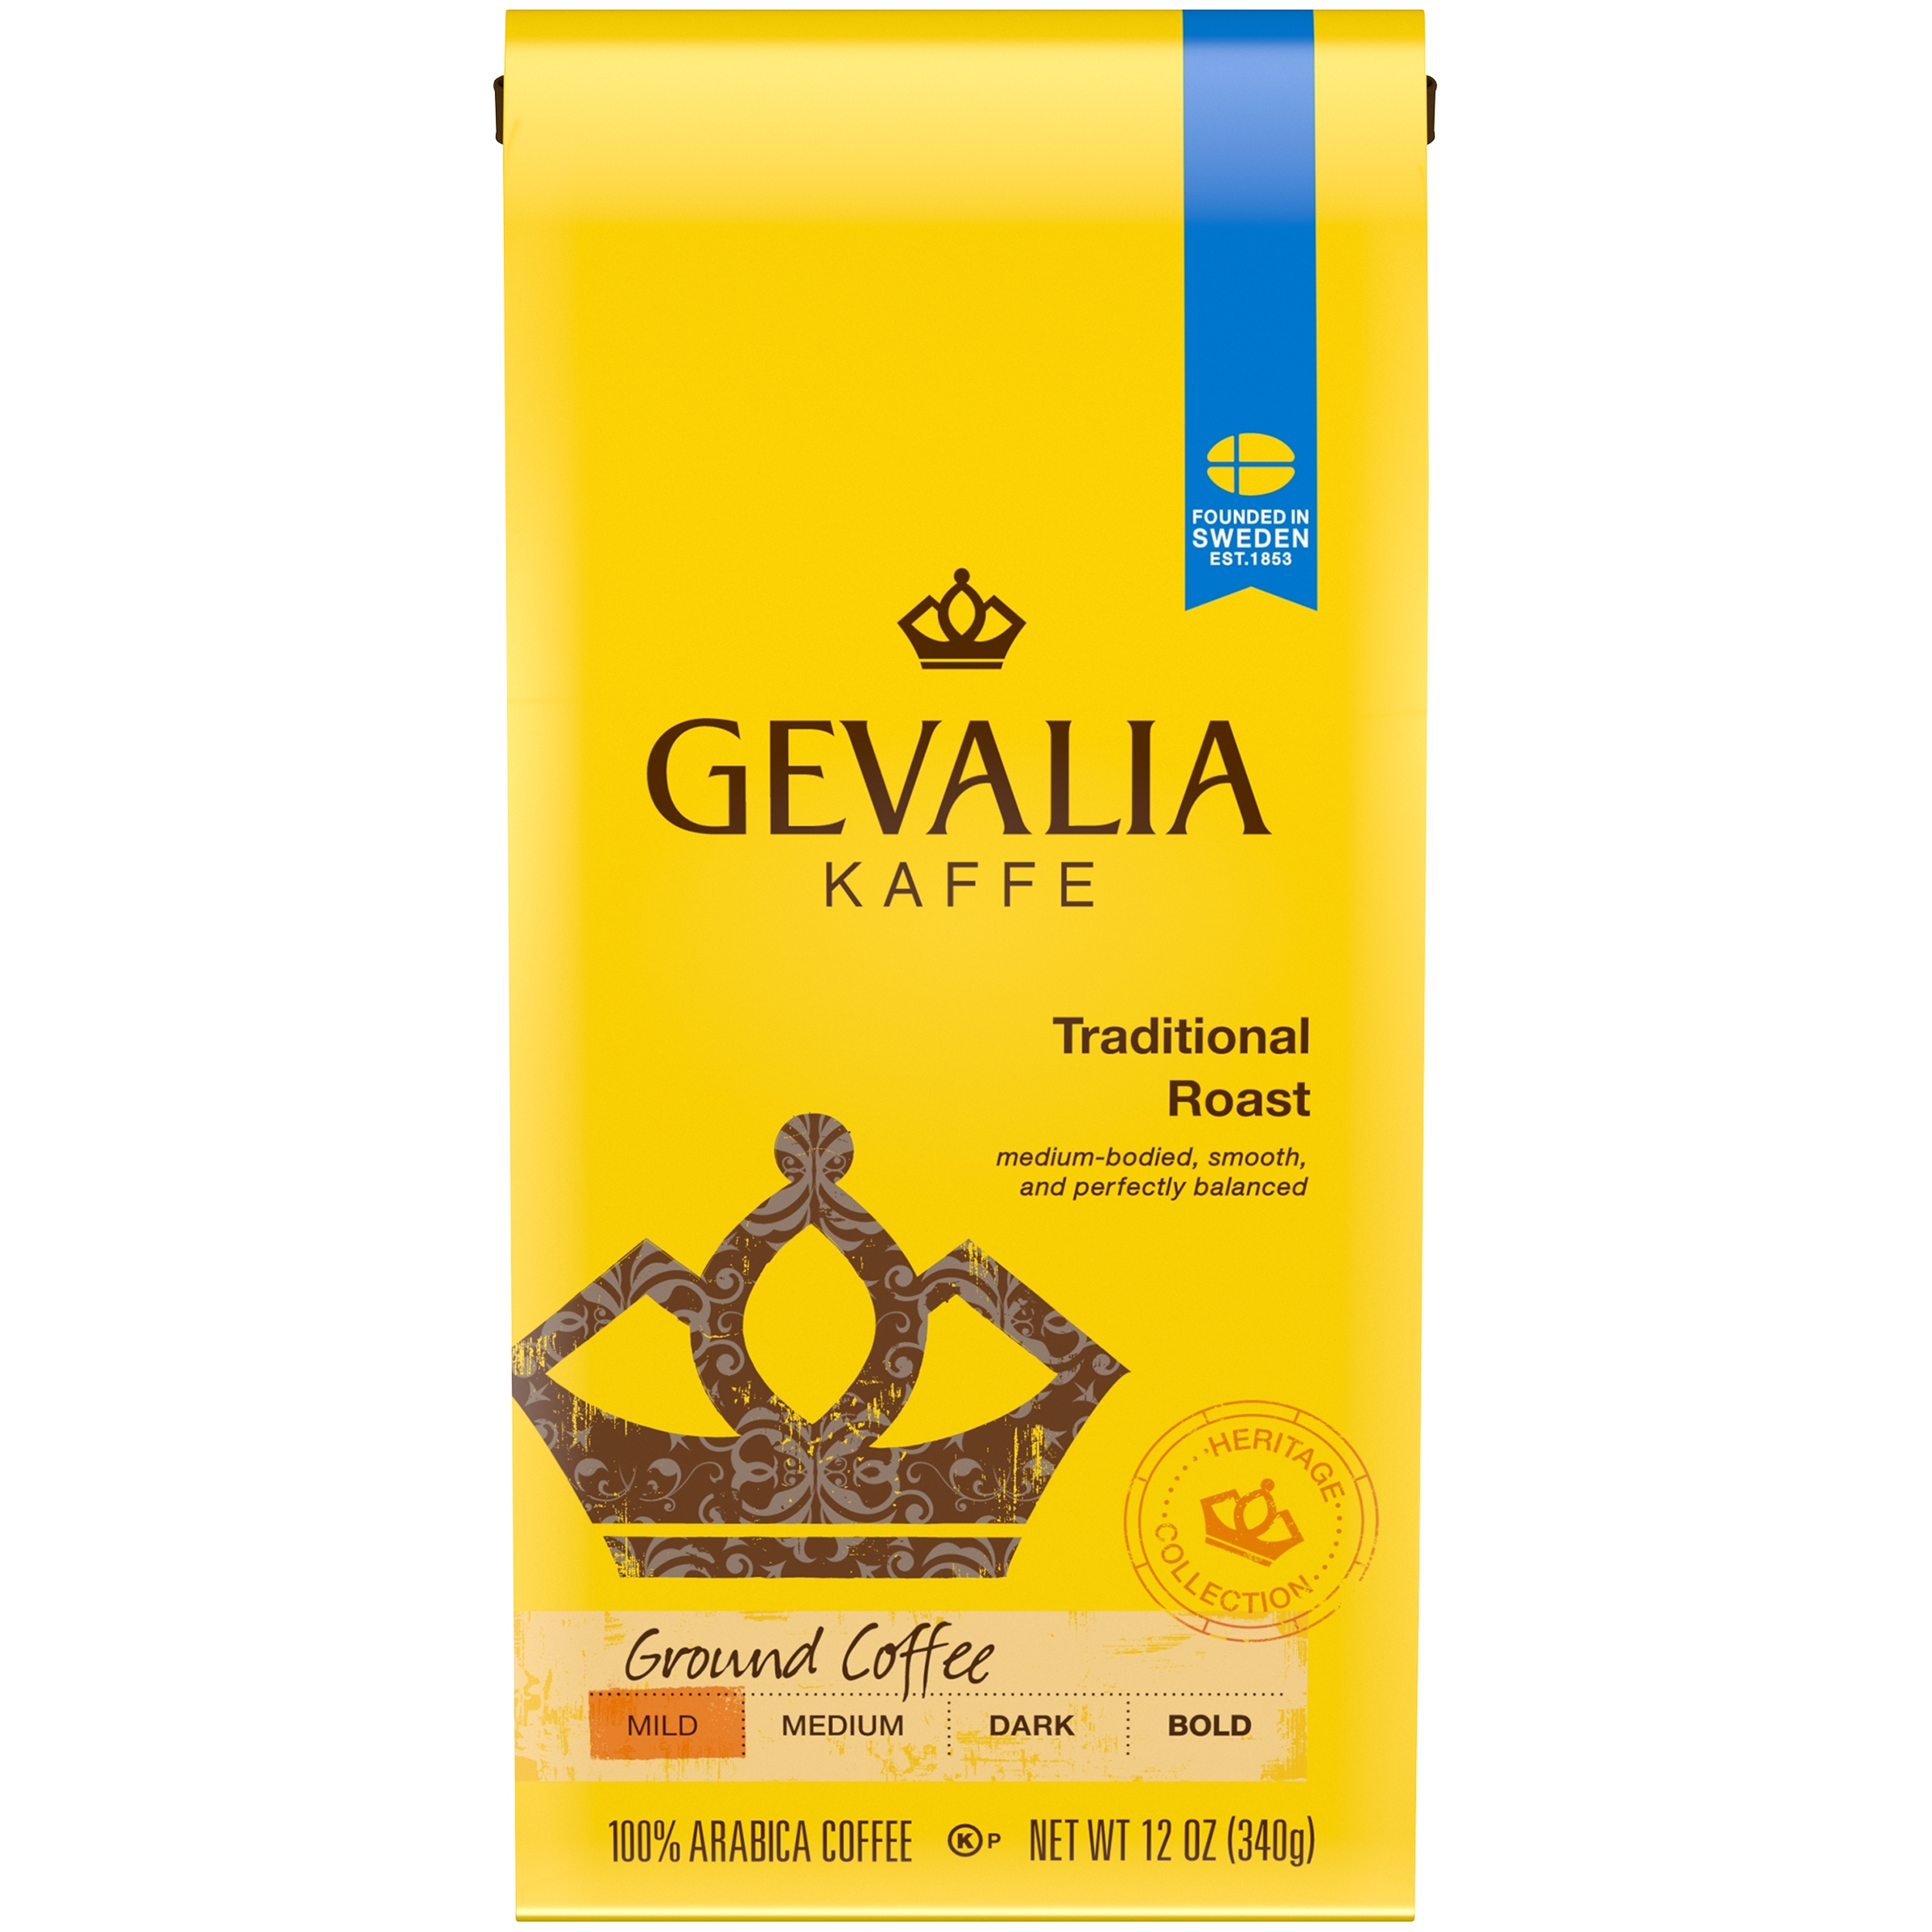 Gevalia Heritage Collection Traditional Roast Ground Coffee 12 oz. Bag